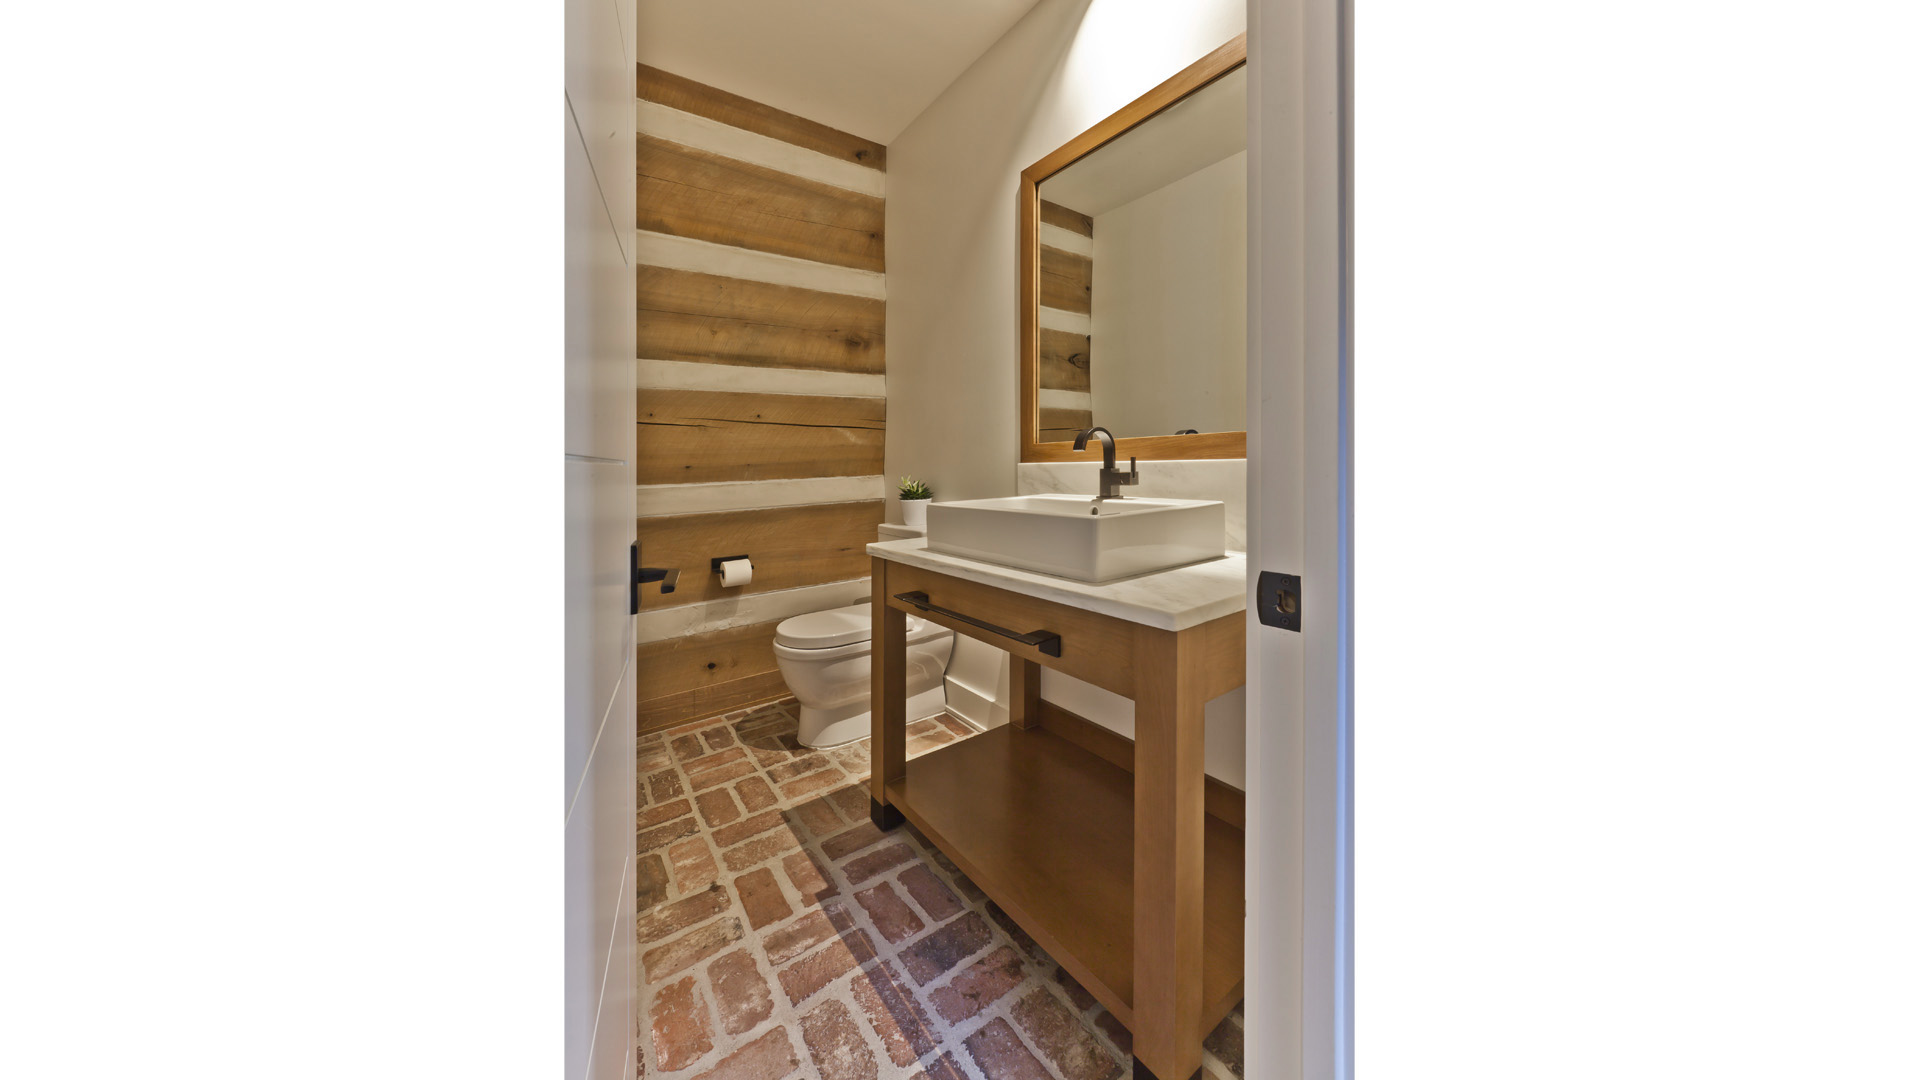 Scandinavian Rustic Cabin - Powder Room East - Christopher Short, Architect, Indianapolis, HAUS Architecture